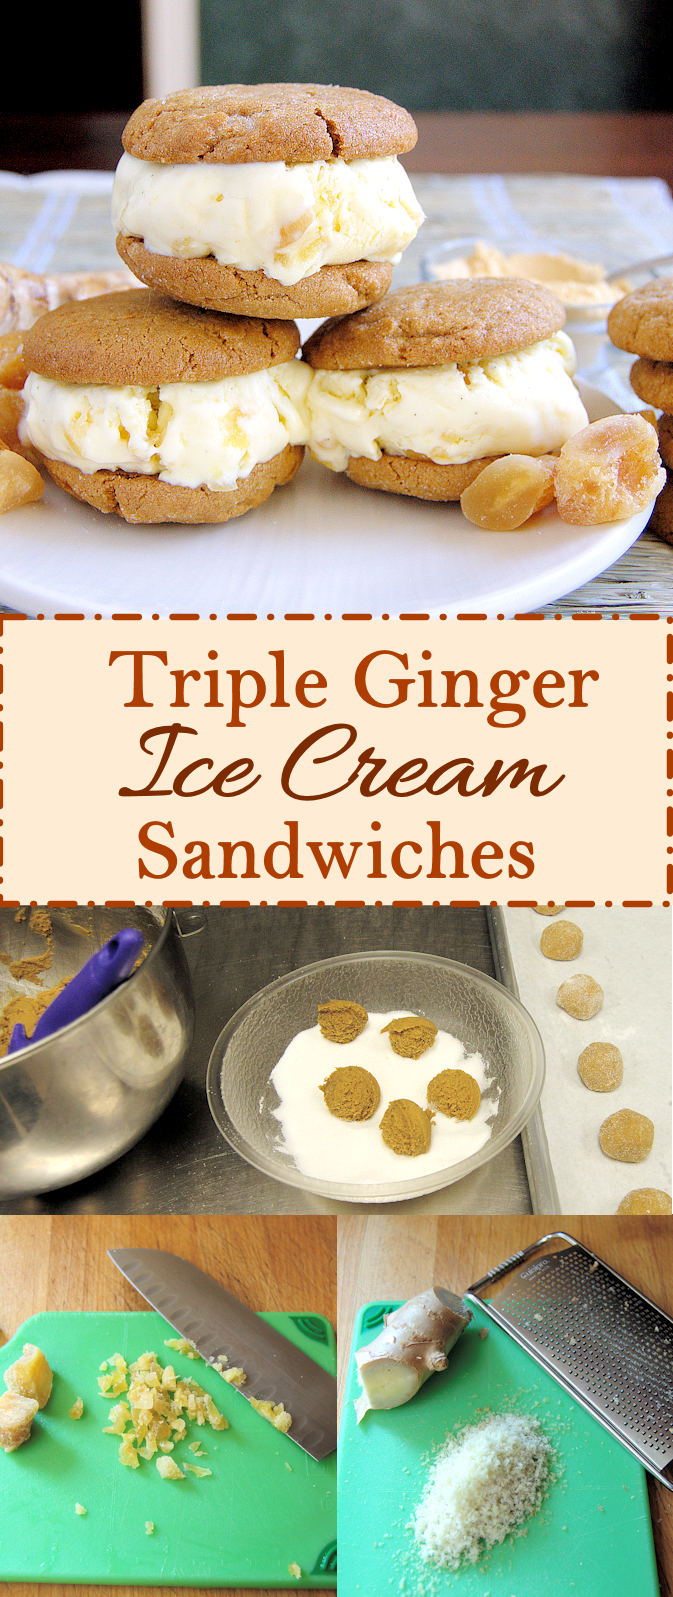 Homemade ginger ice cream sandwiched between ginger cookies. Super easy to make ahead. Create your own ice cream sandwich bar at your next party.